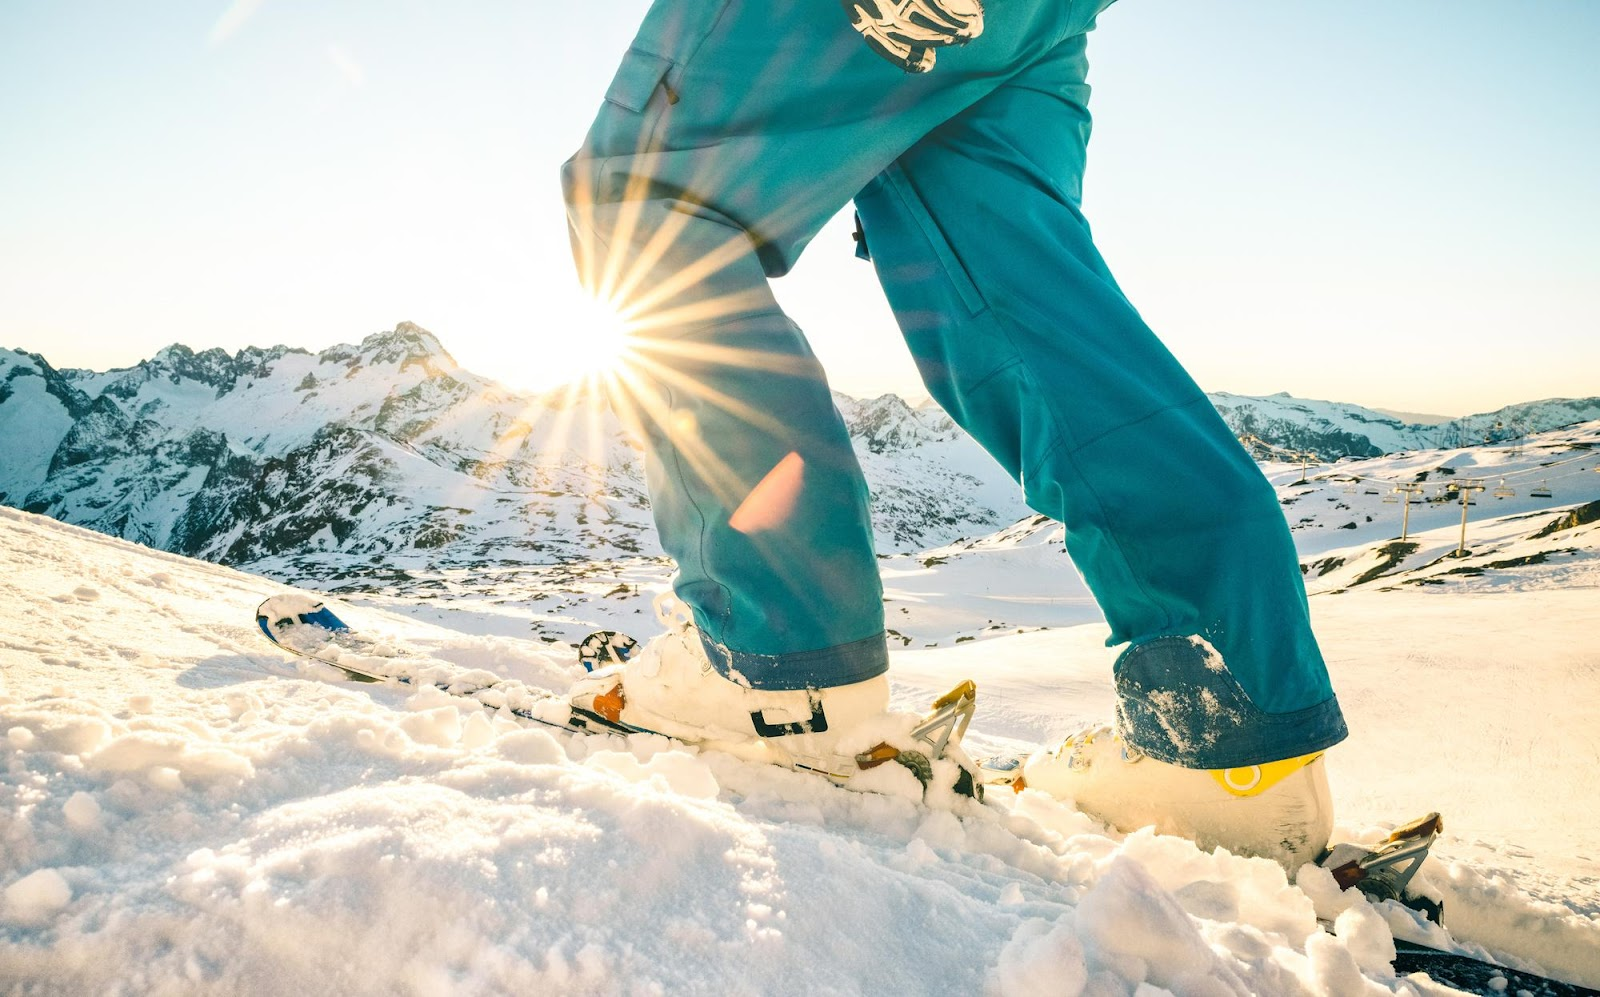 First Time Skiing? Here's What to Wear and Bring!